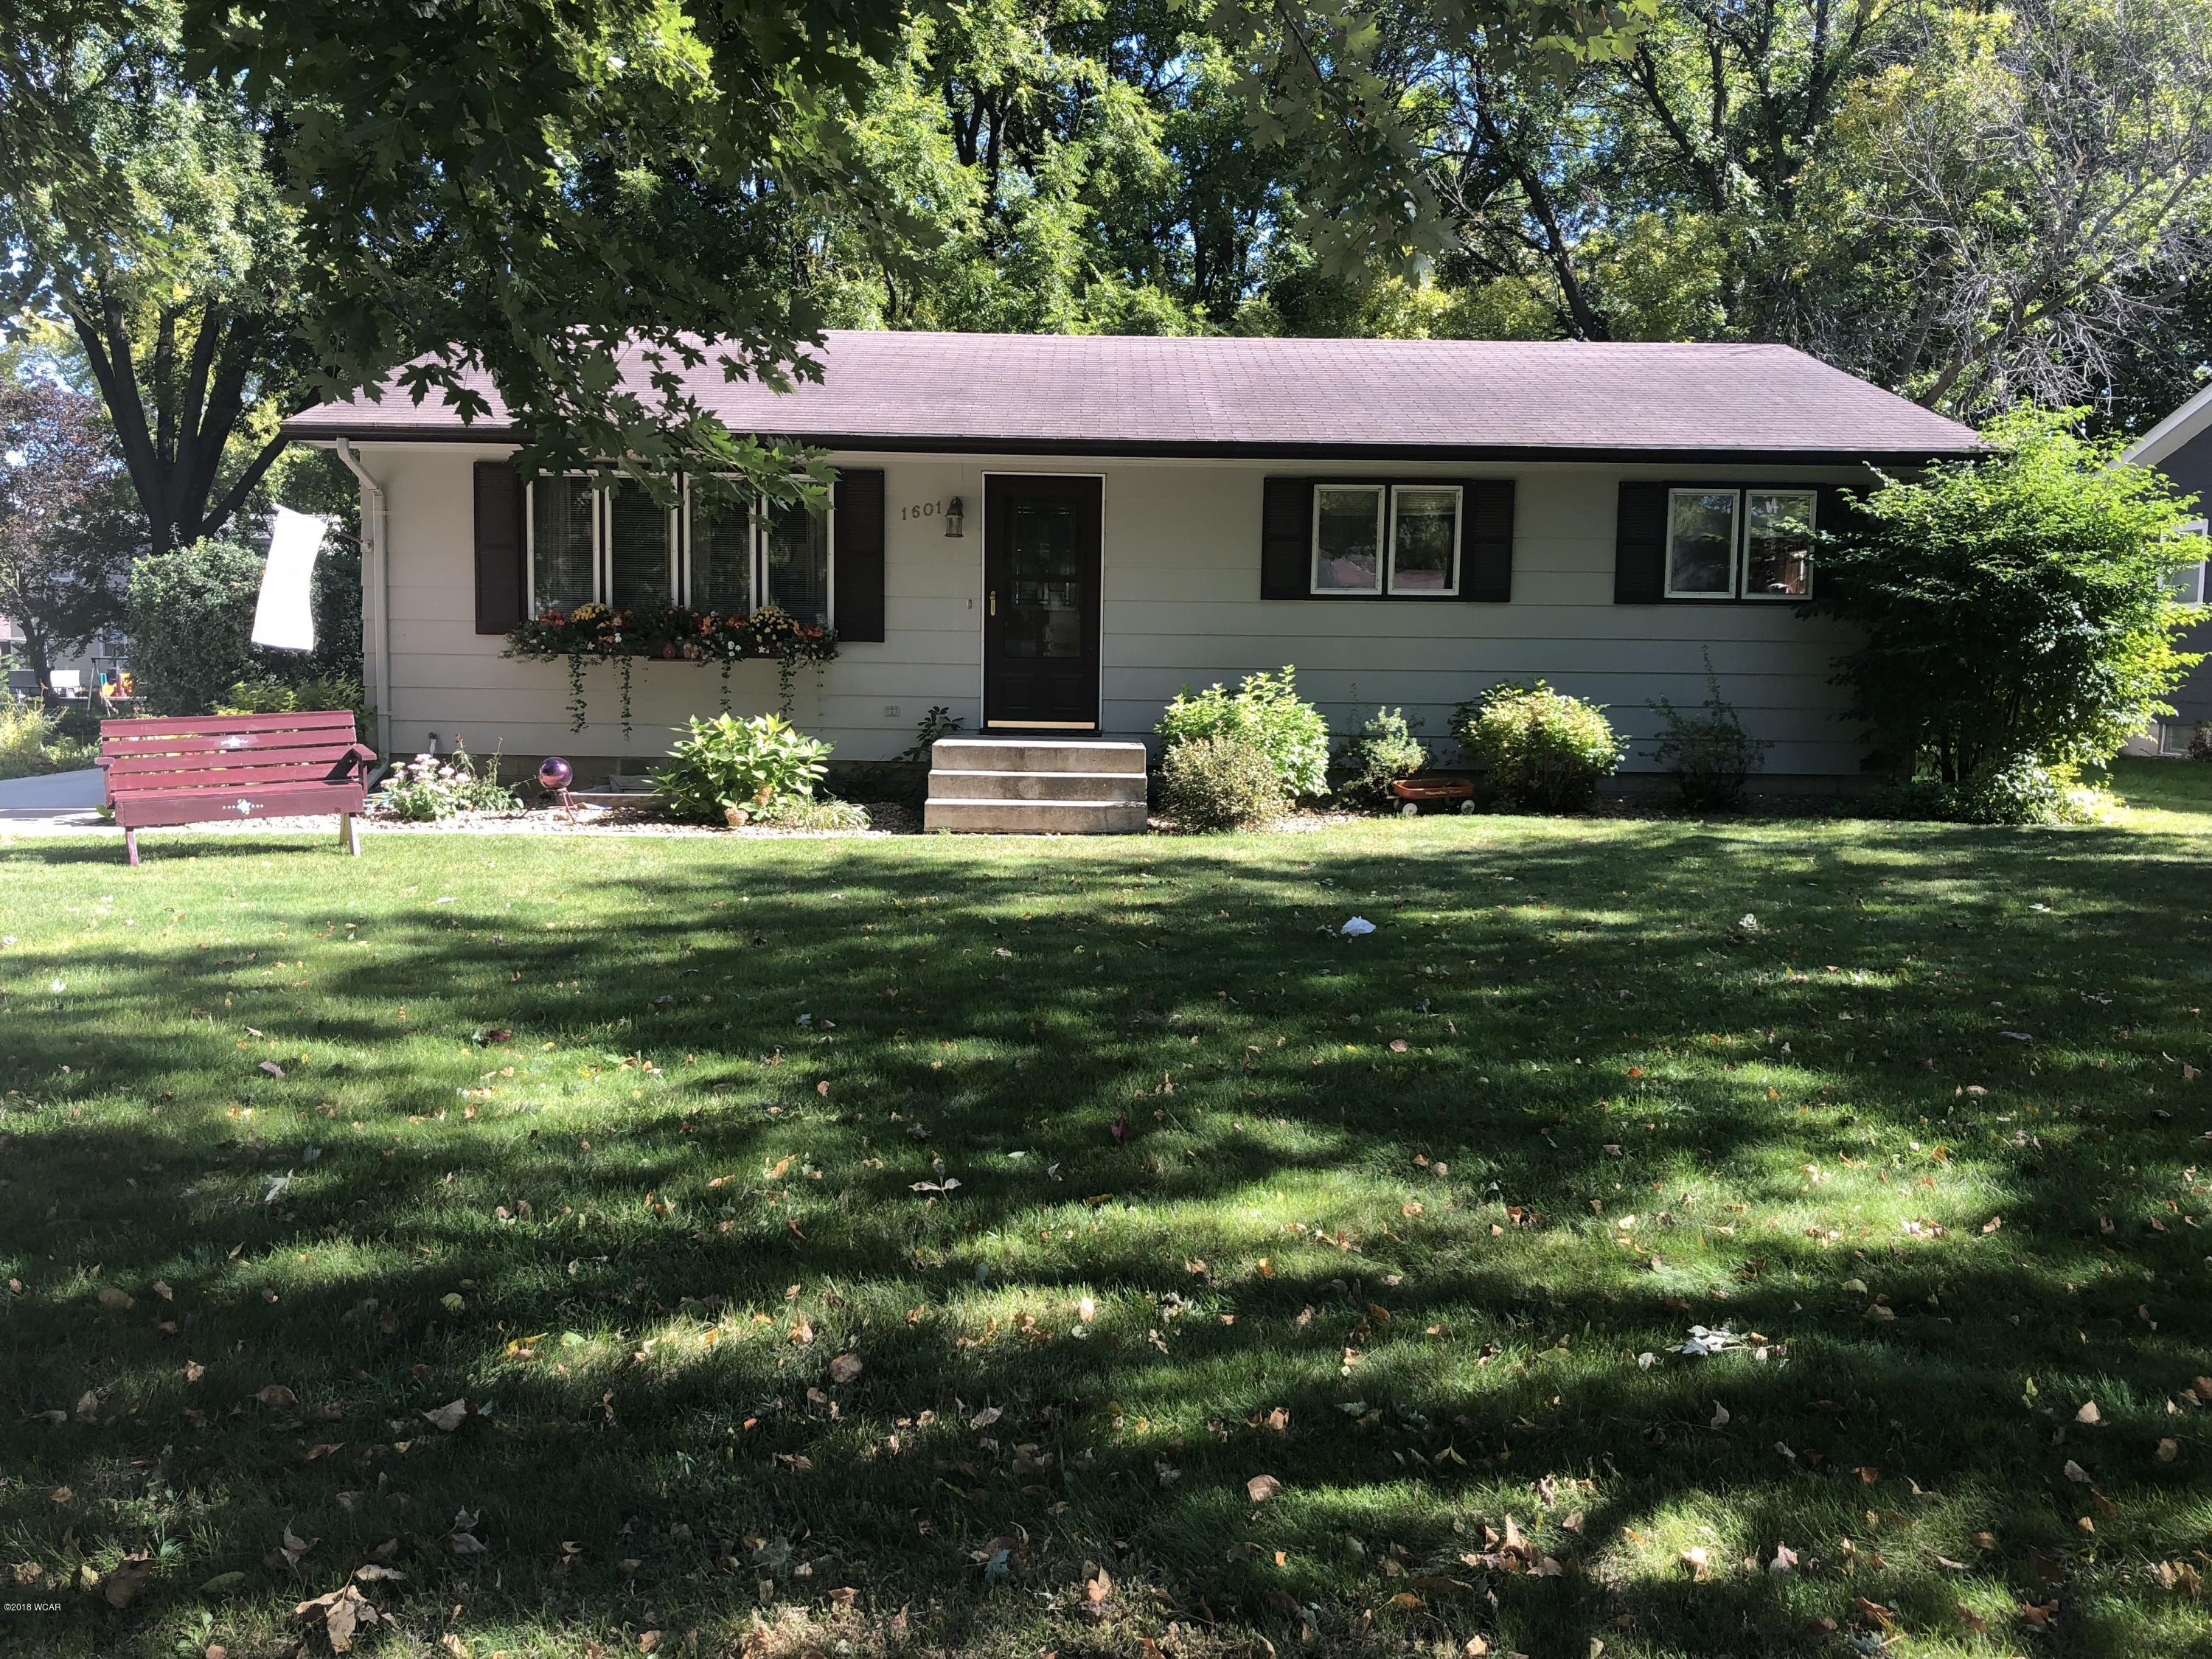 1601 8th Street,Willmar,3 Bedrooms Bedrooms,2 BathroomsBathrooms,Single Family,8th Street,6032501